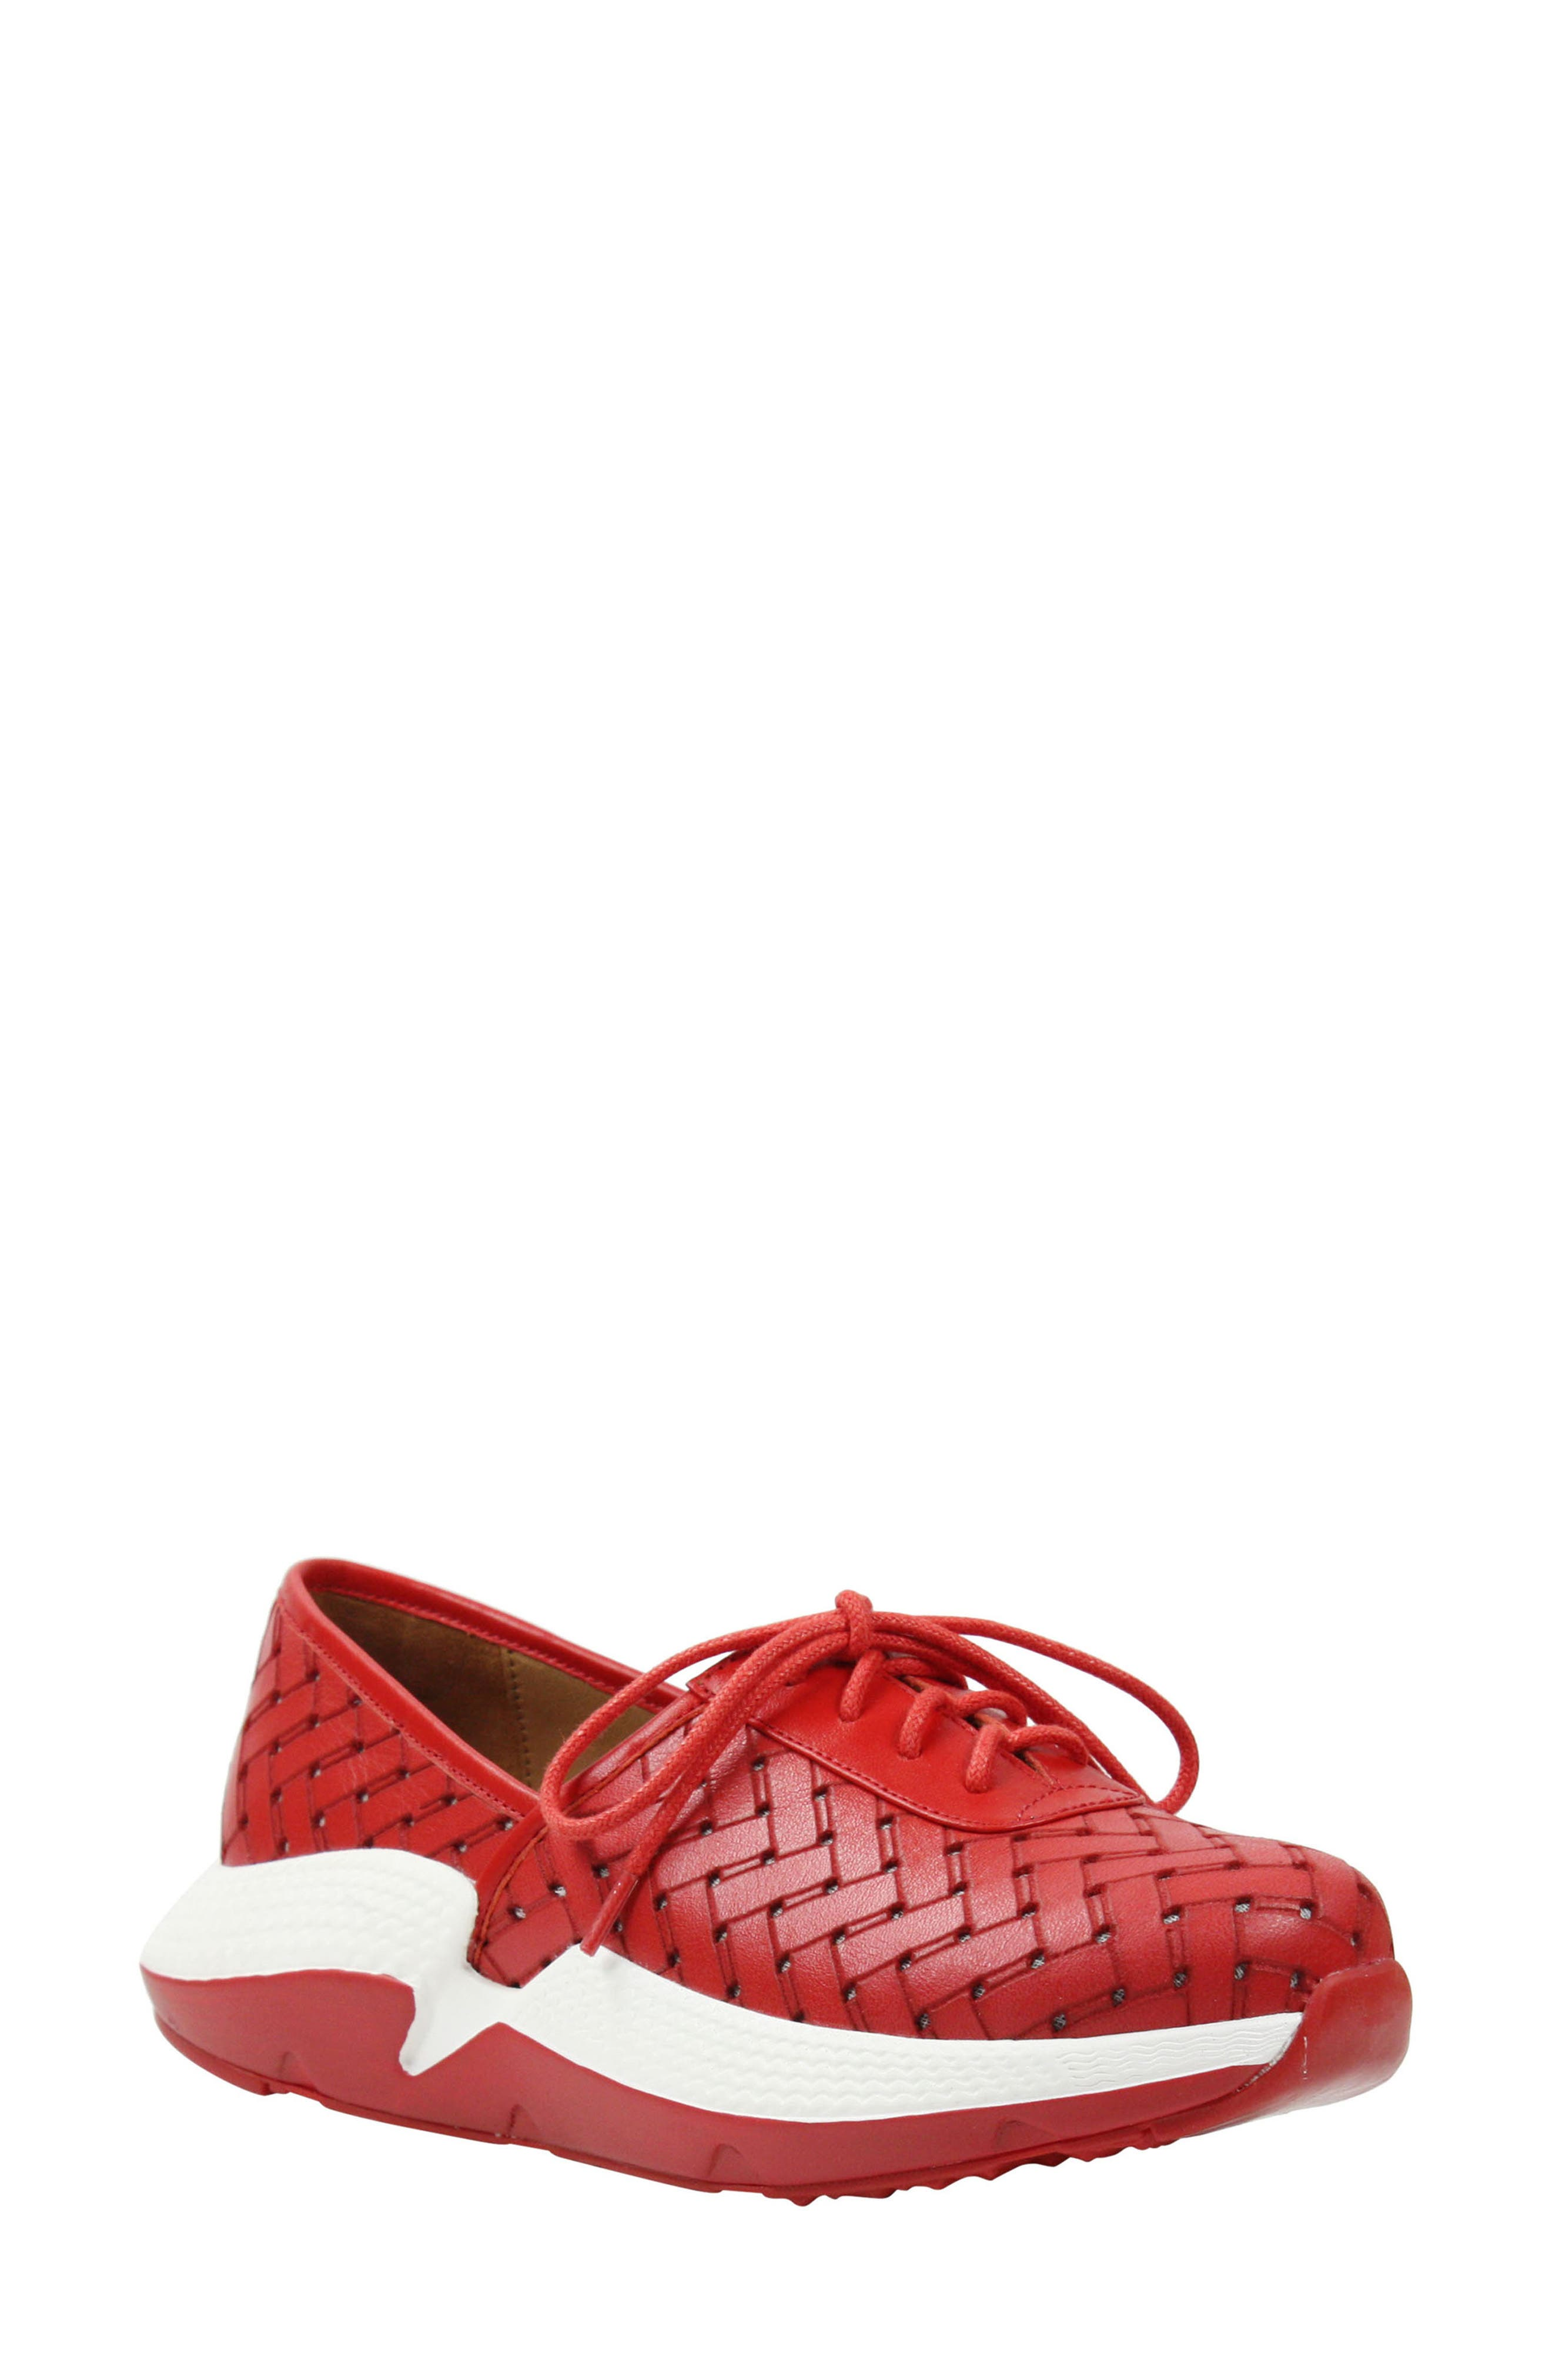 L'AMOUR DES PIEDS Helodie Sneaker, Main, color, RED LEATHER